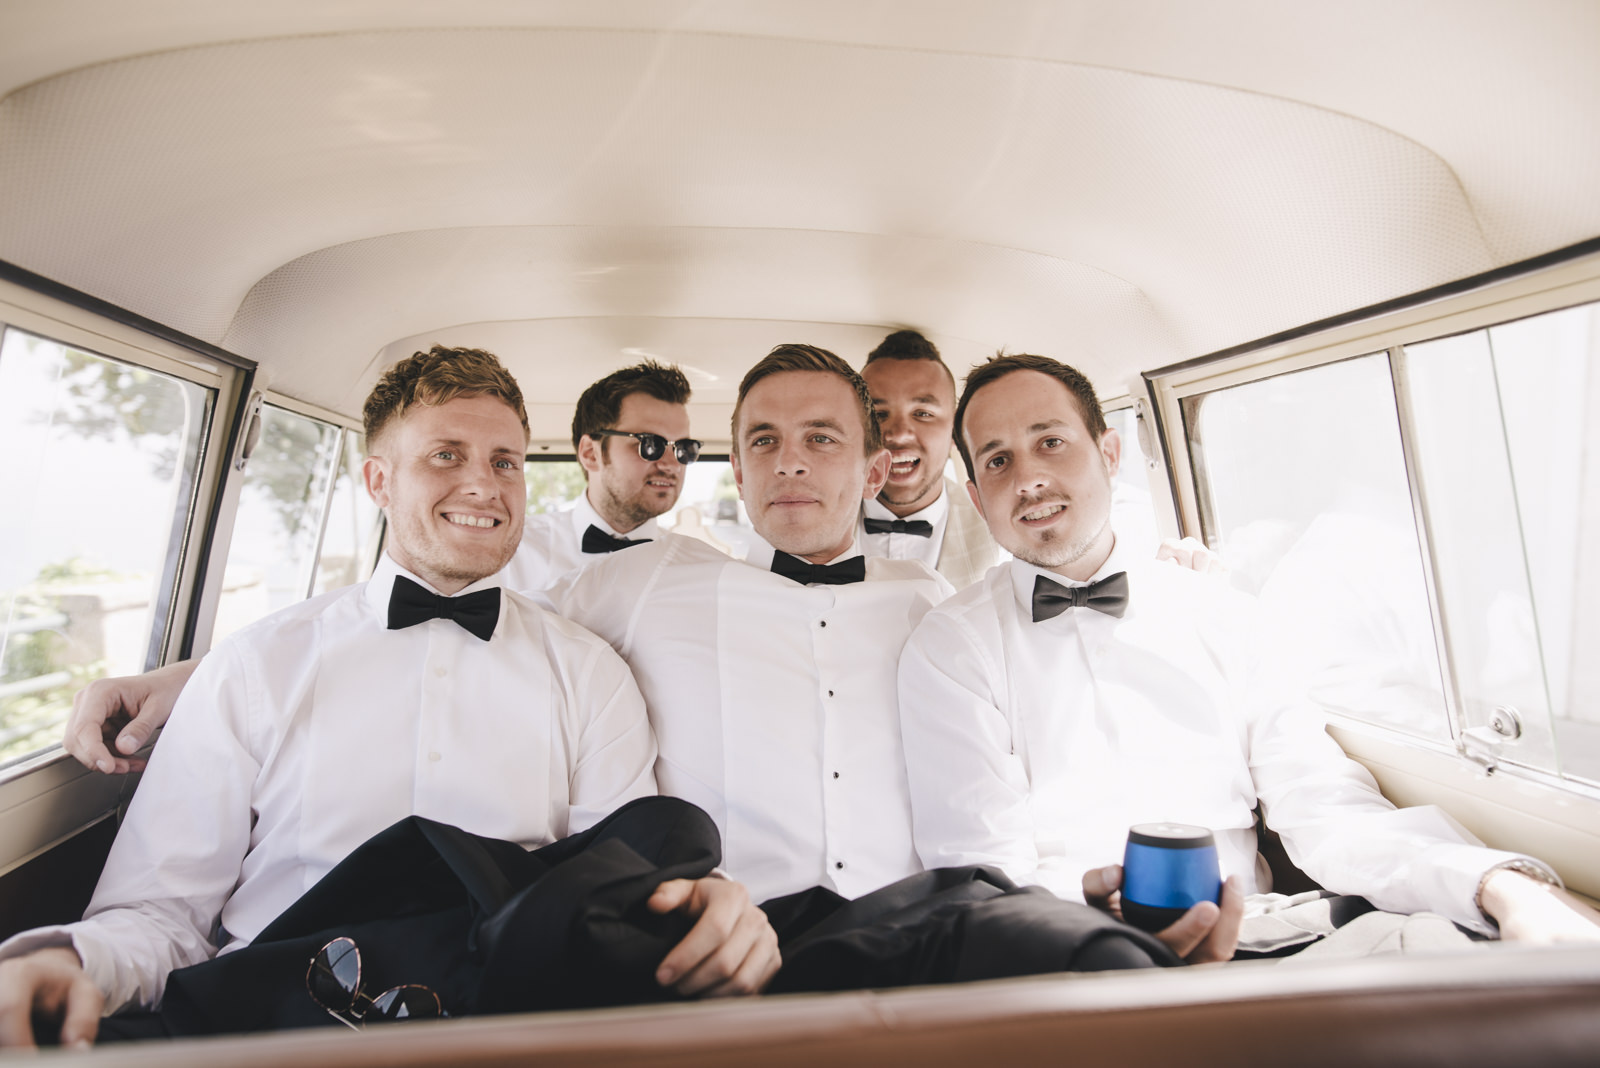 the groom with his best men in the mini van going to the ceremony